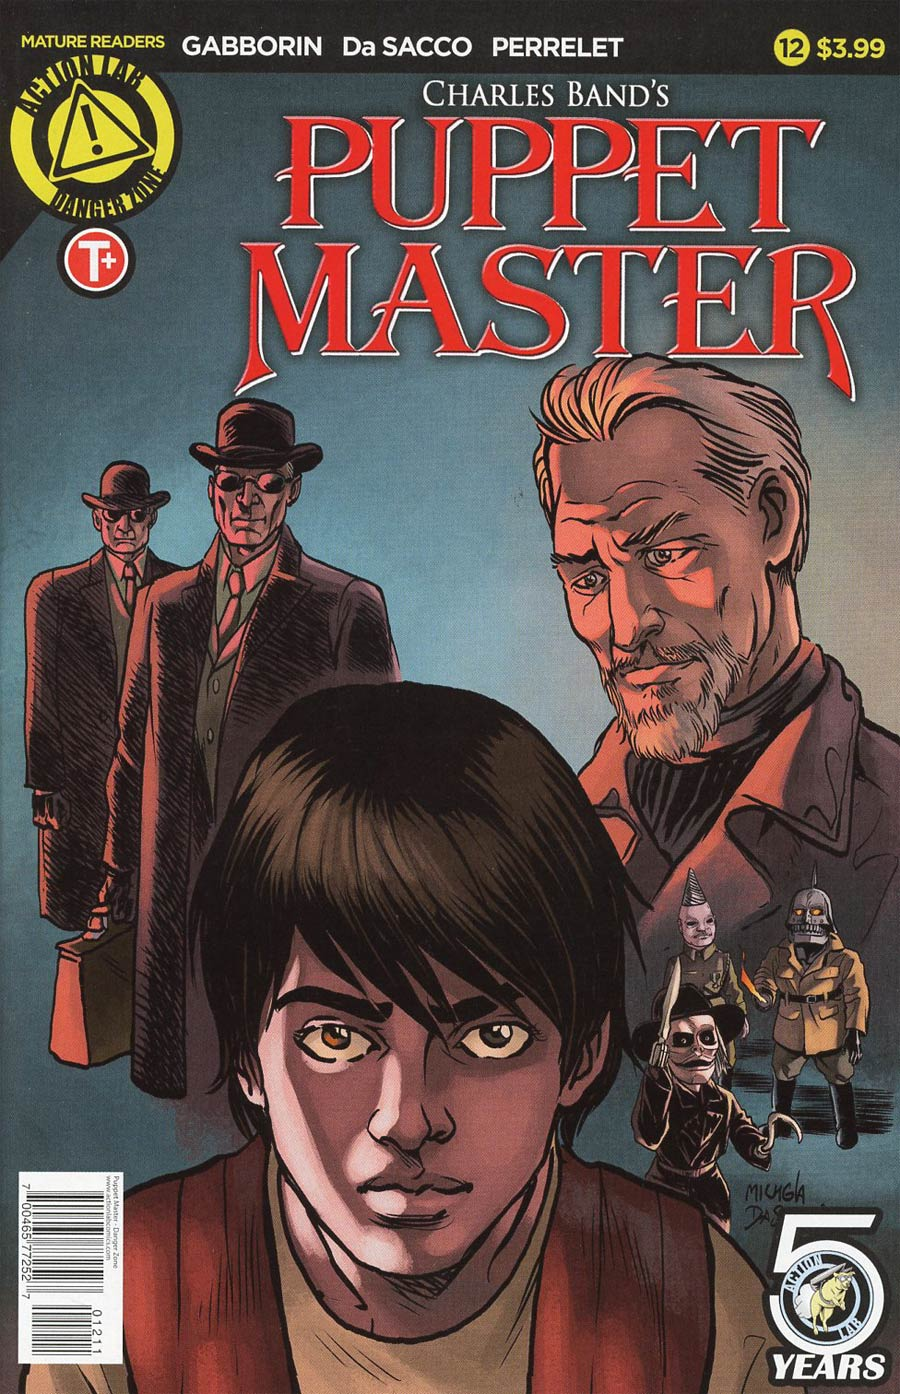 Puppet Master #12 Cover A Regular Michela Da Sacco Cover